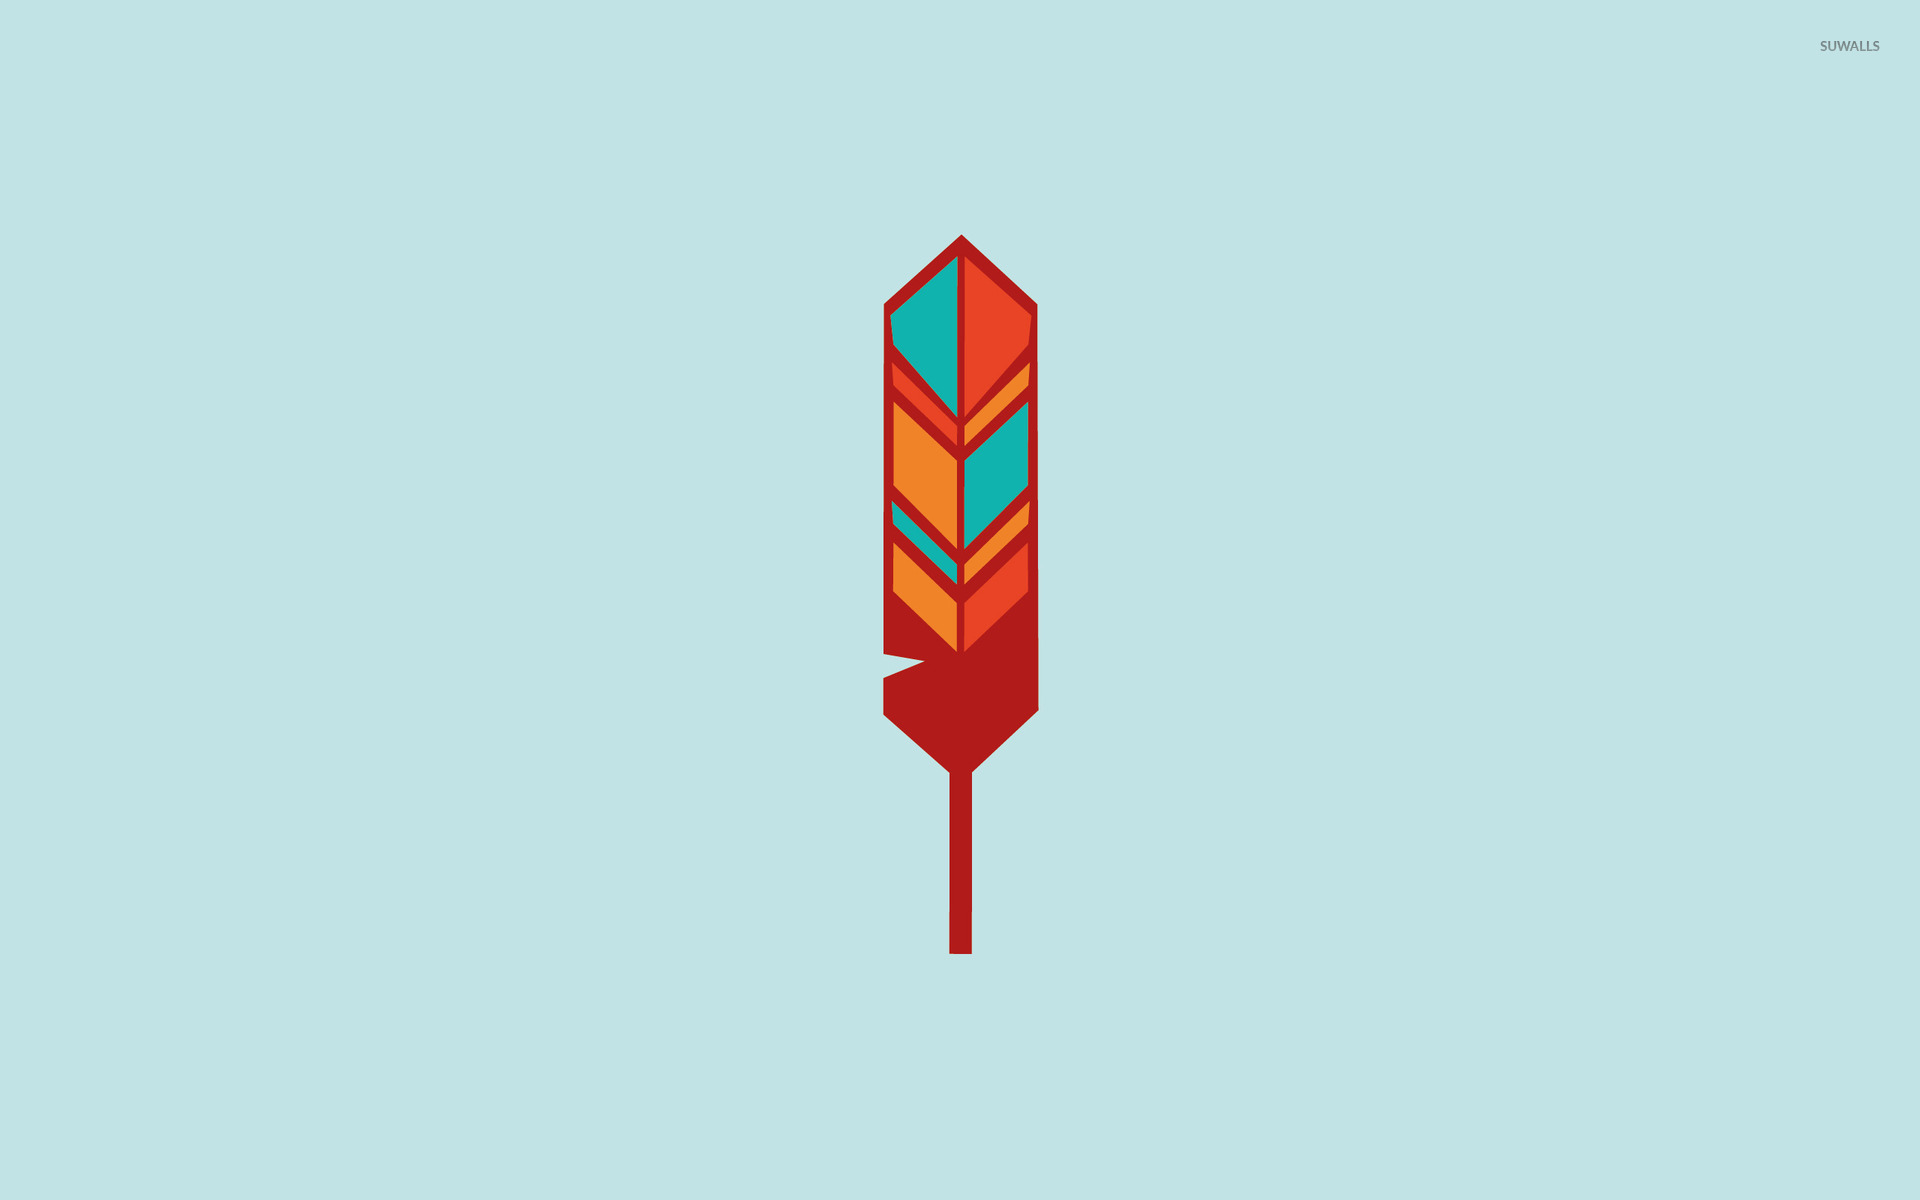 Indian feather wallpaper   Minimalistic wallpapers   14547 1920x1200